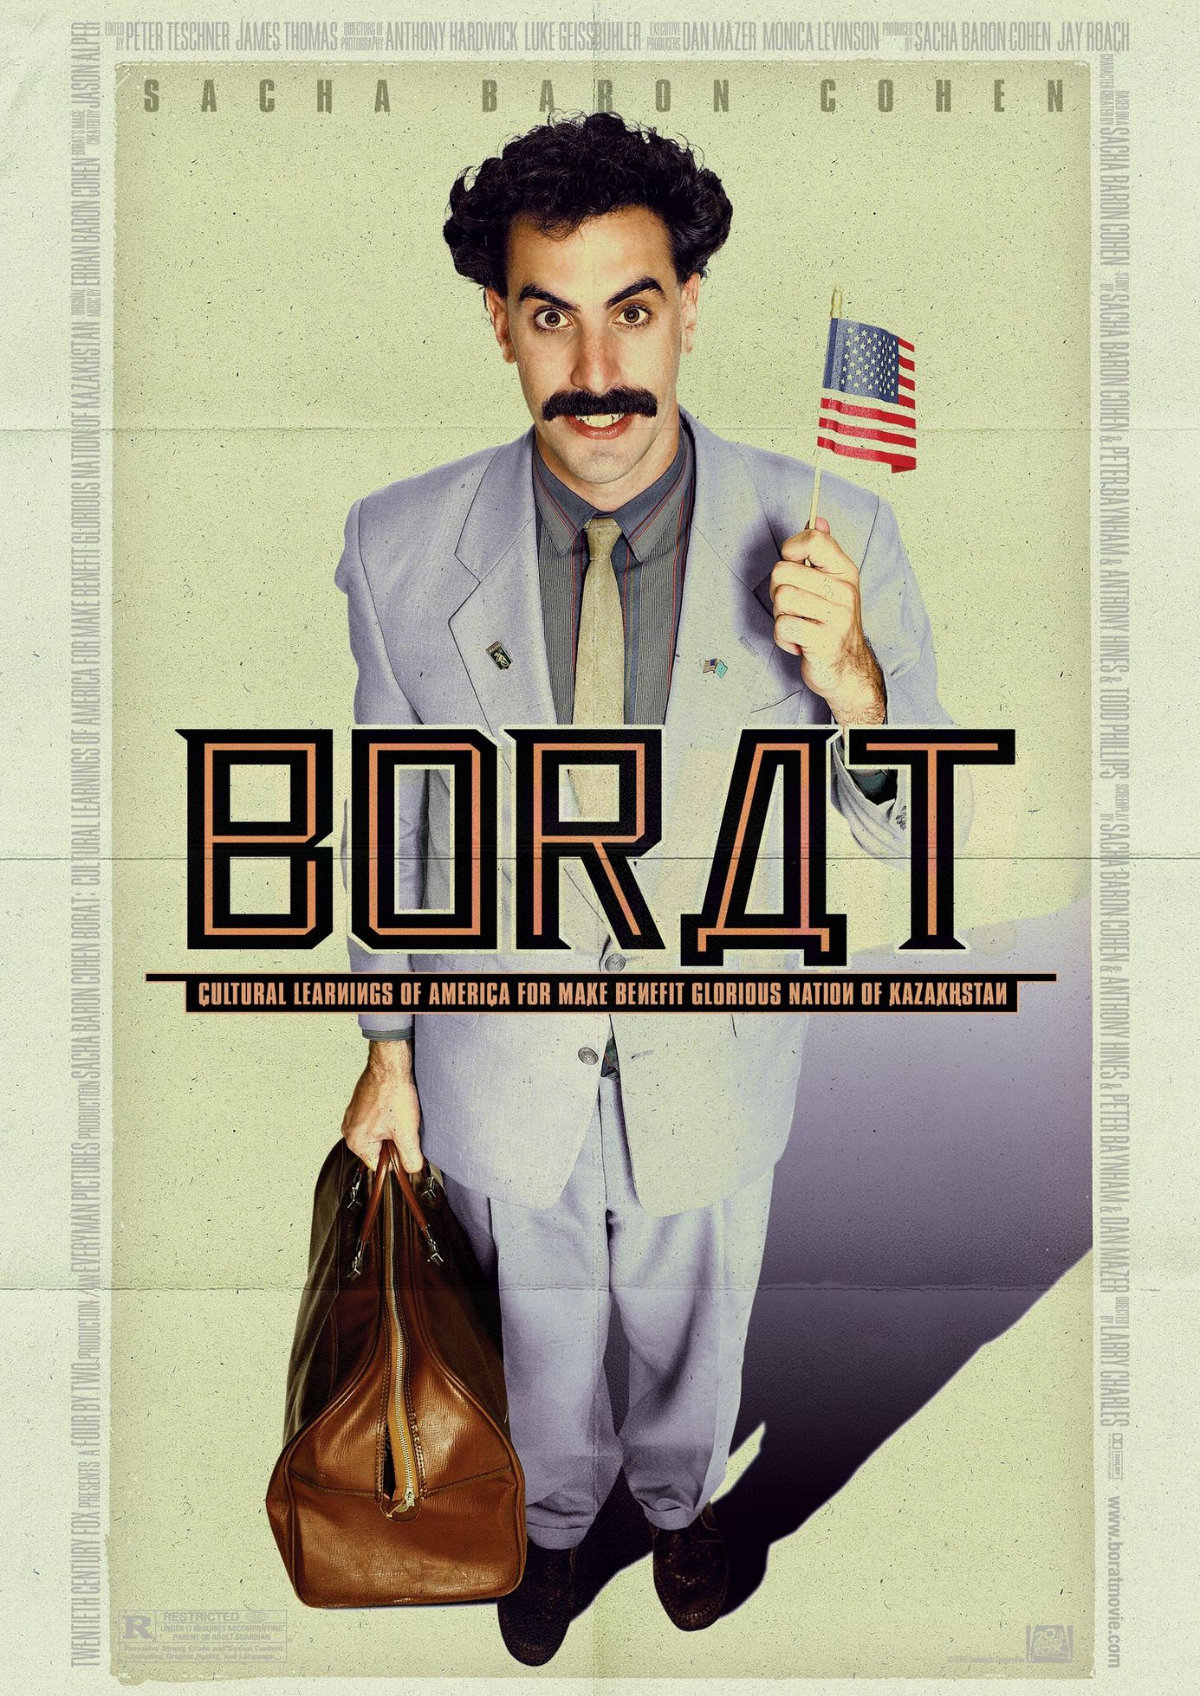 'Borat: Cultural Learnings Of America For Make Benefit Glorious Nation Of Kazakhstan' movie poster